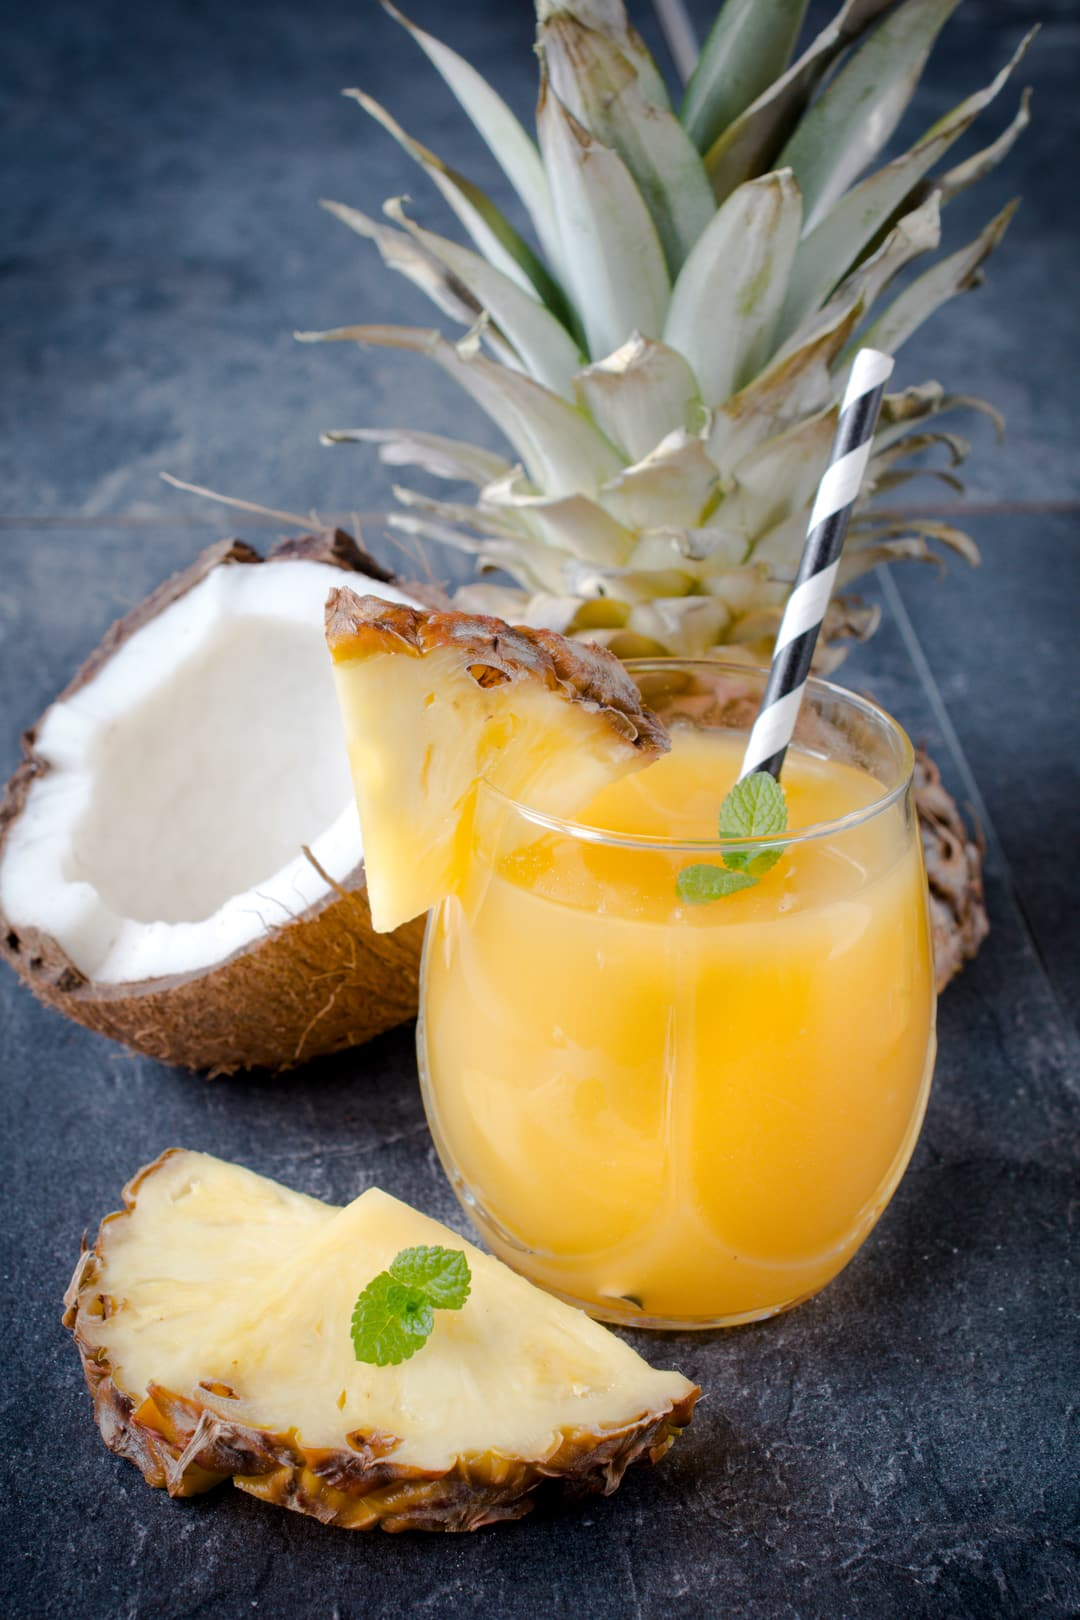 bromelain found in pineapples helps skin healing